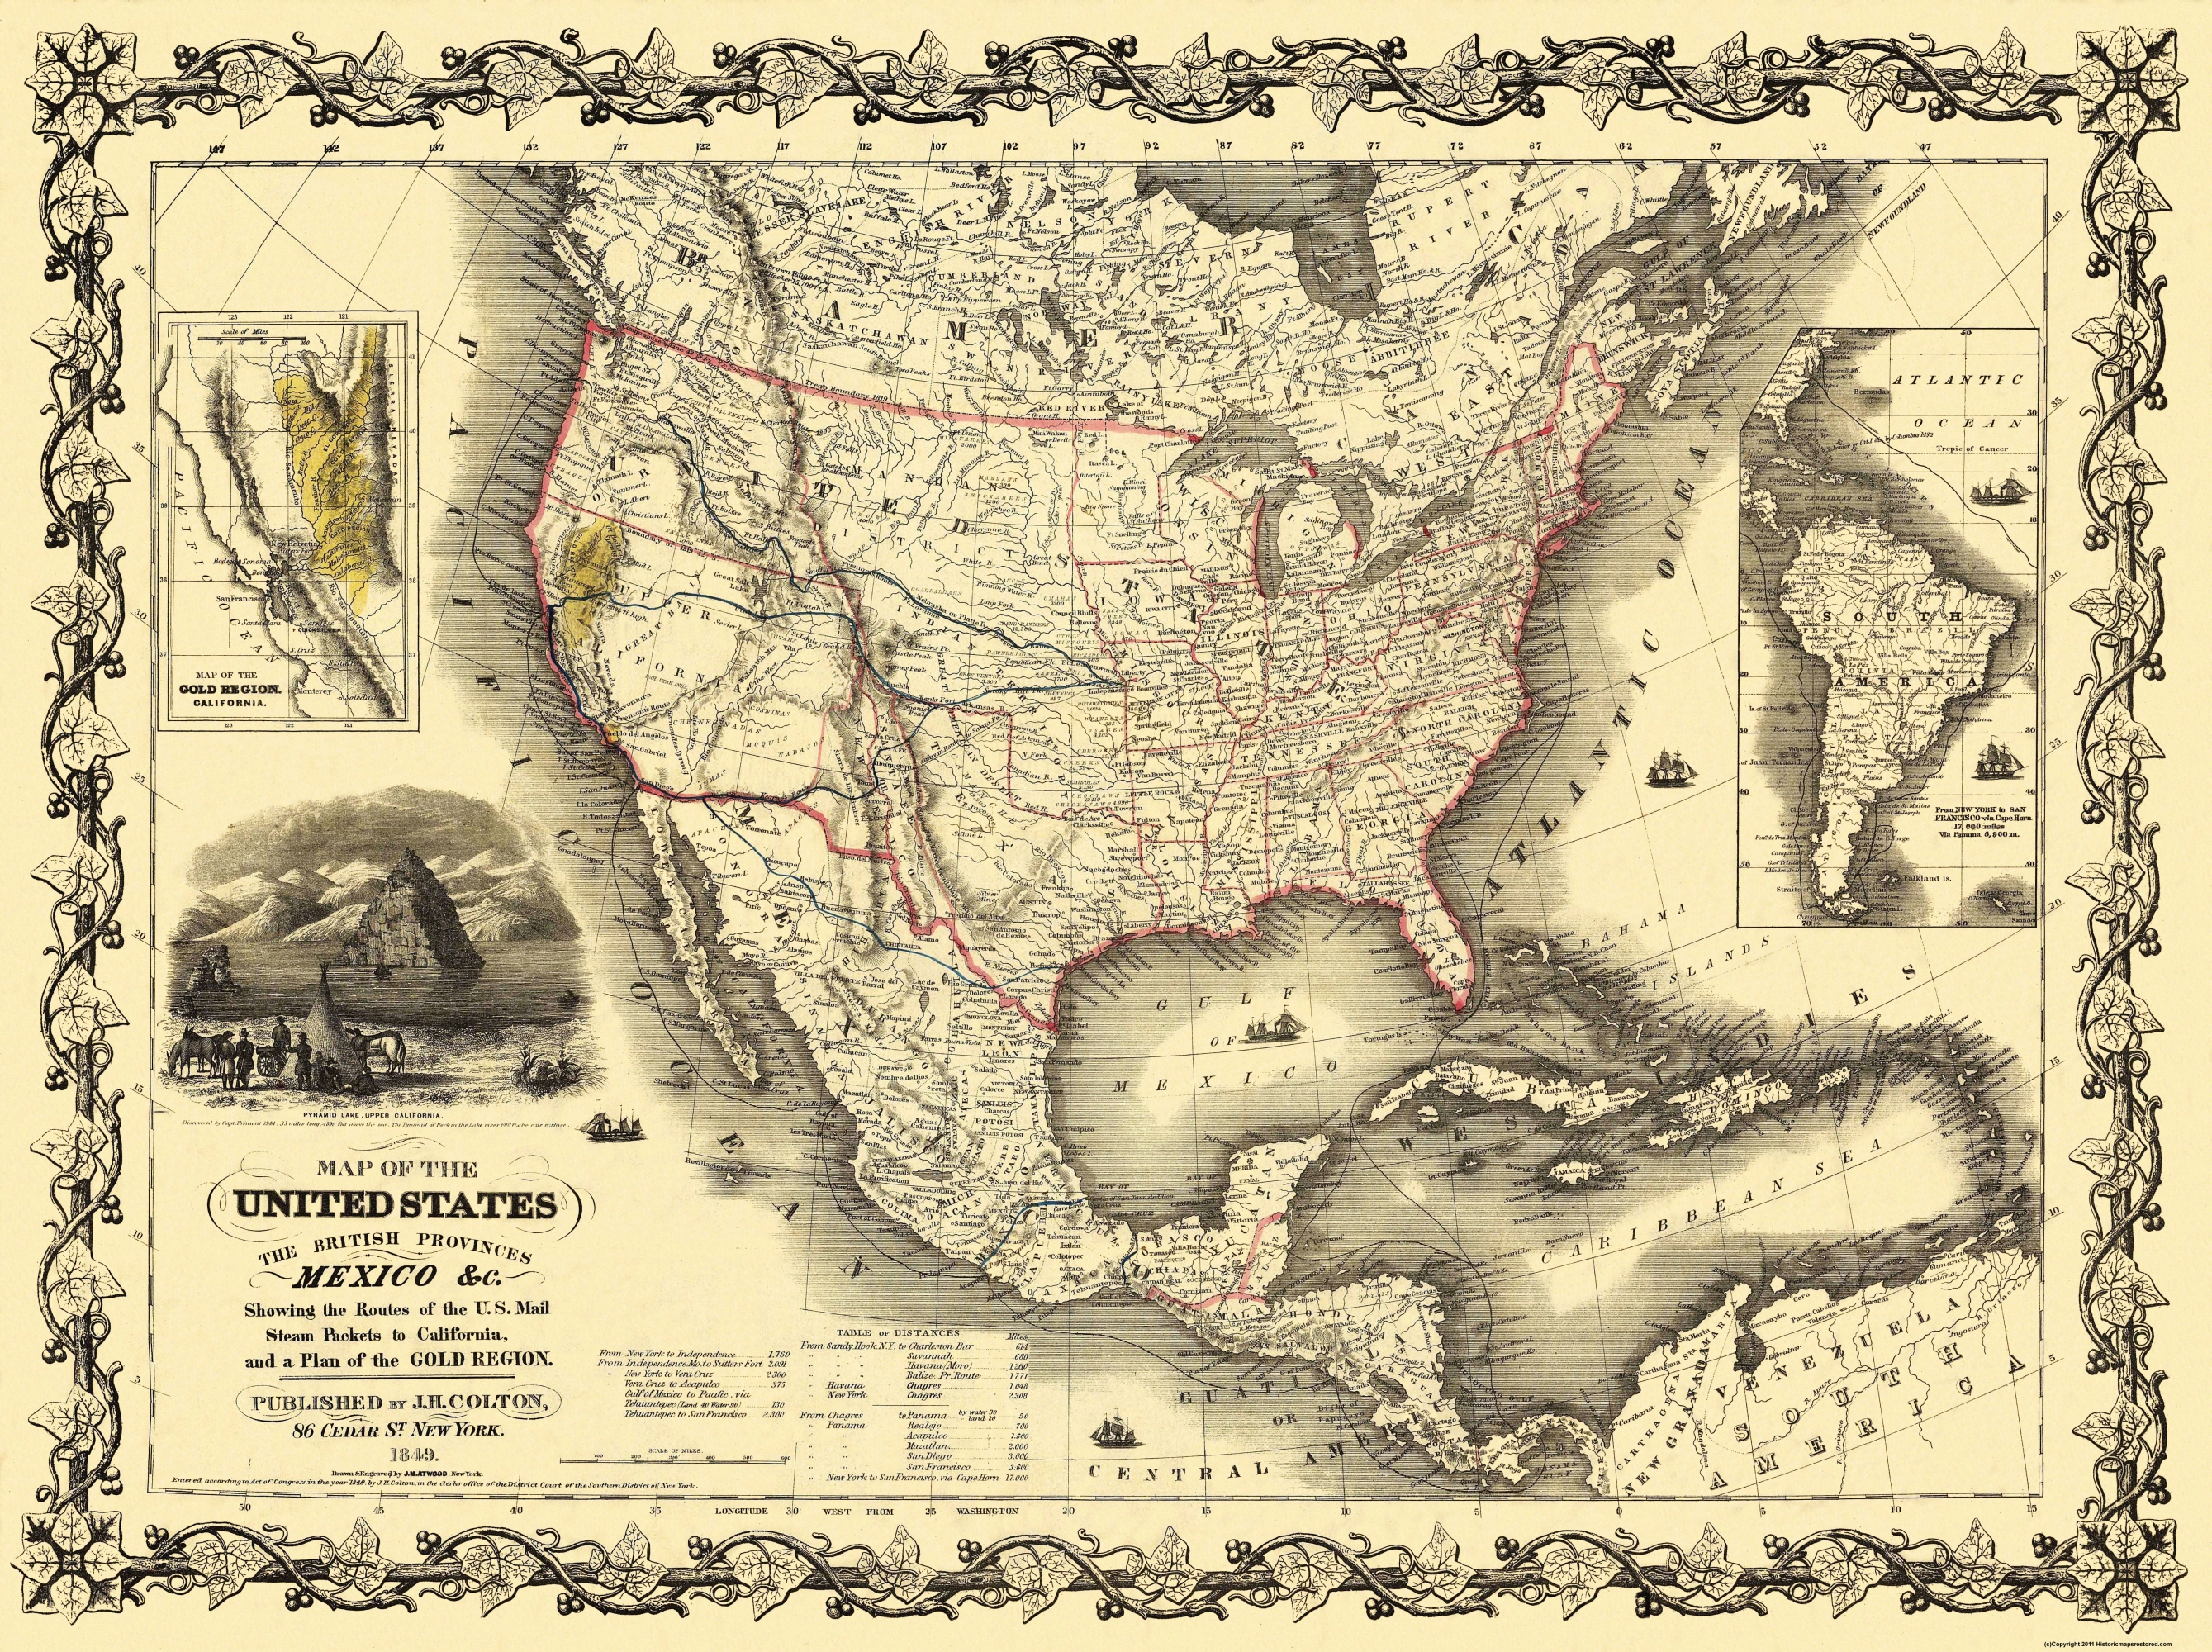 Old State Map - United States, Mexico - Colton 1849